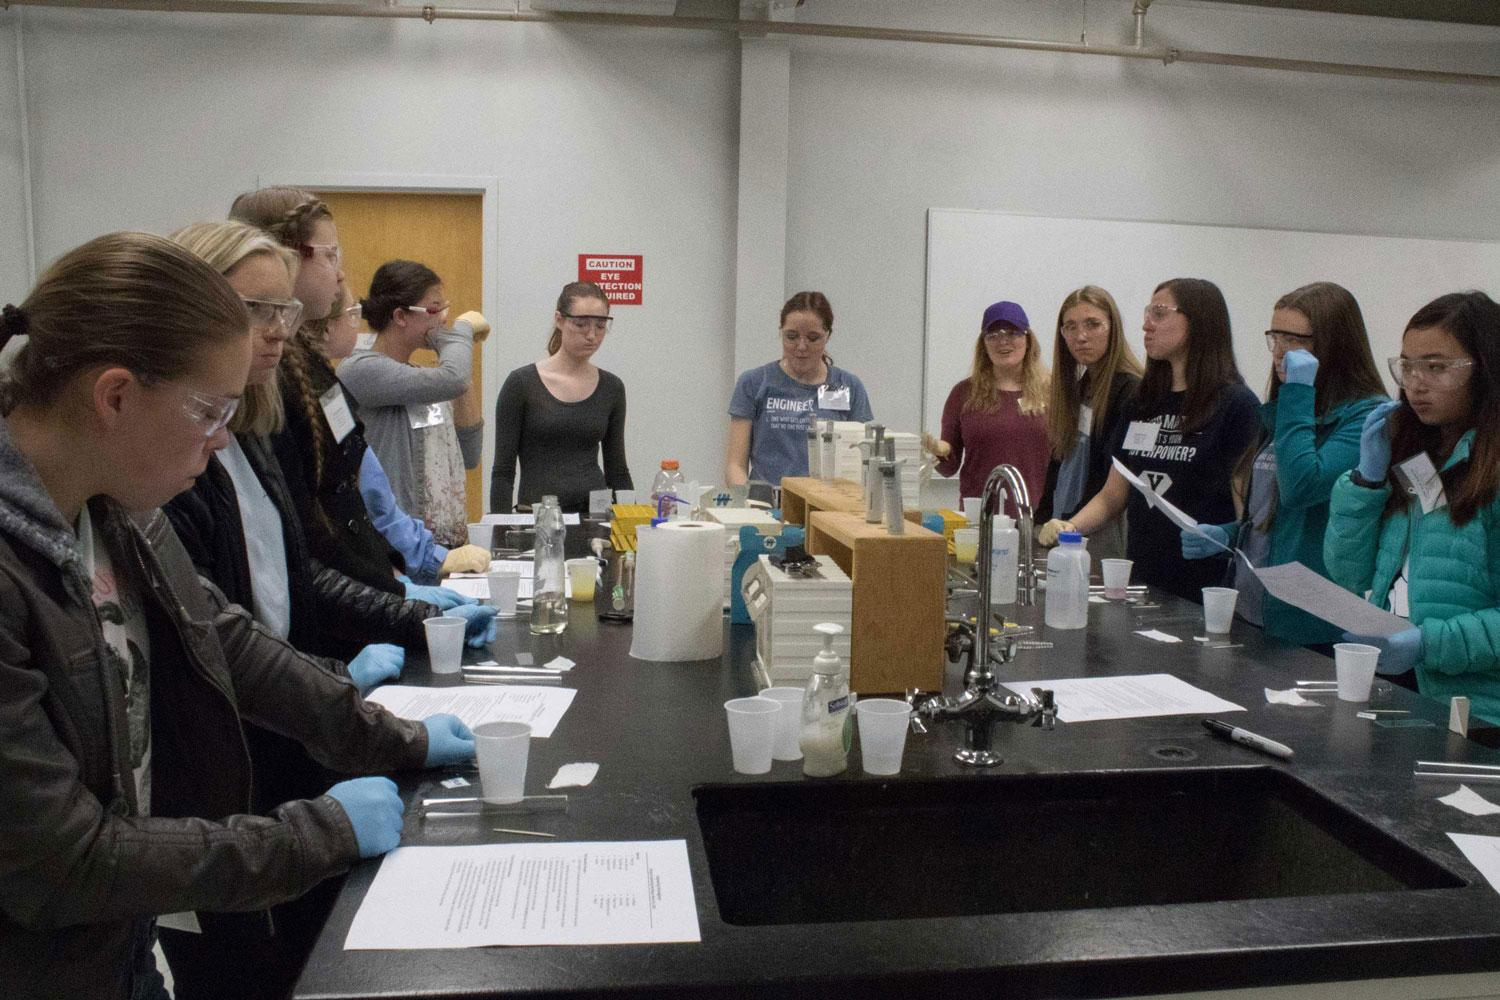 Group of Females around table looking at scientific equipment